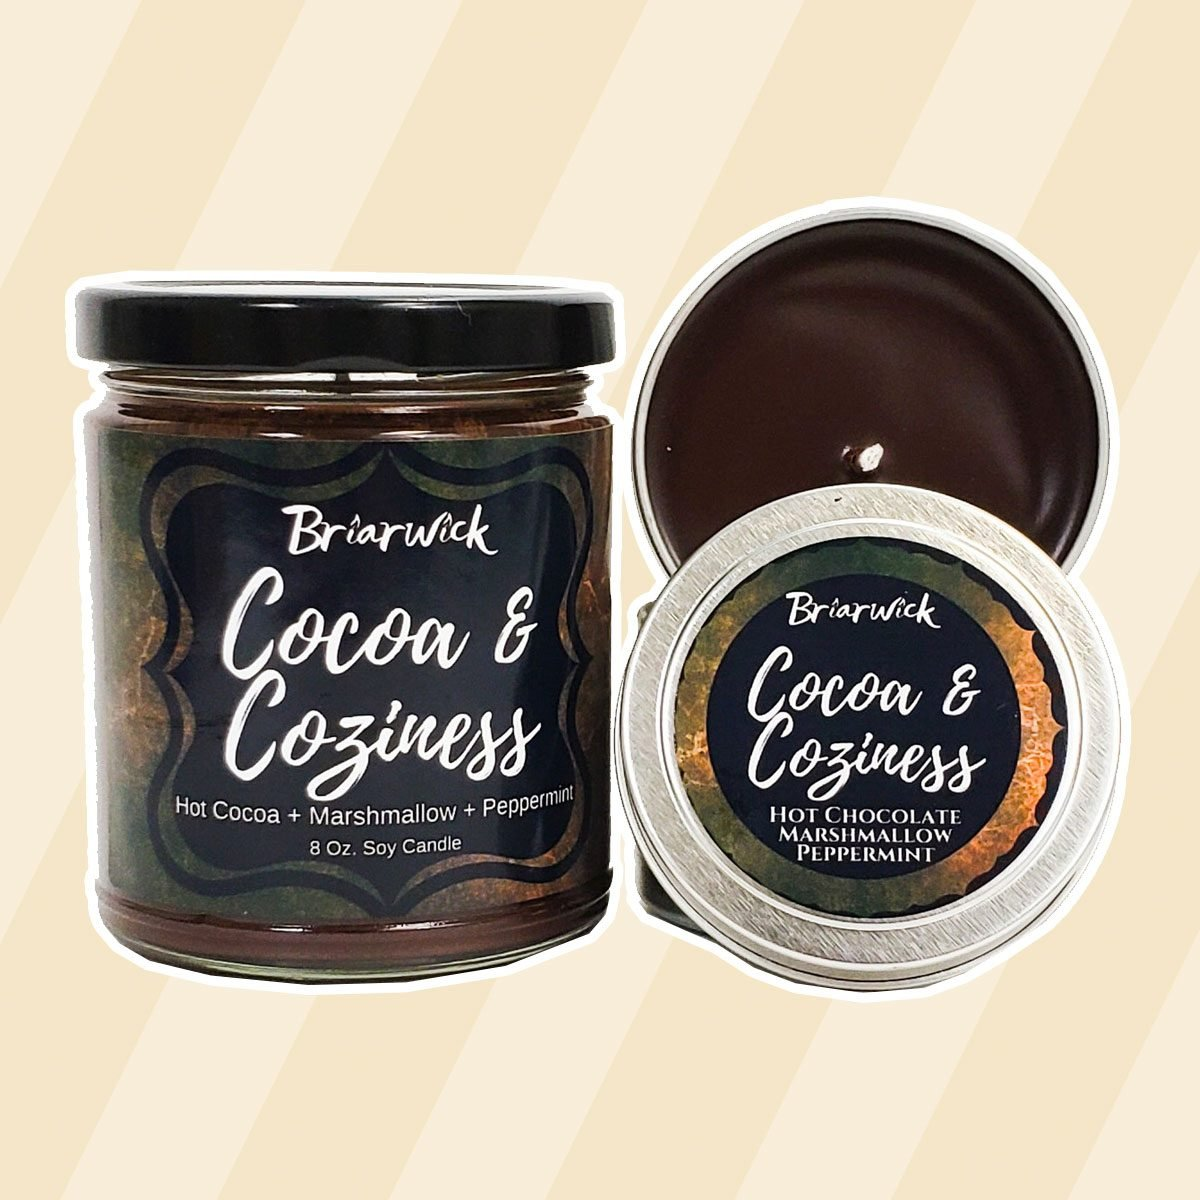 Cocoa and Coziness- Autumn & Winter Seasonal Exclusive- Soy Vegan Candle